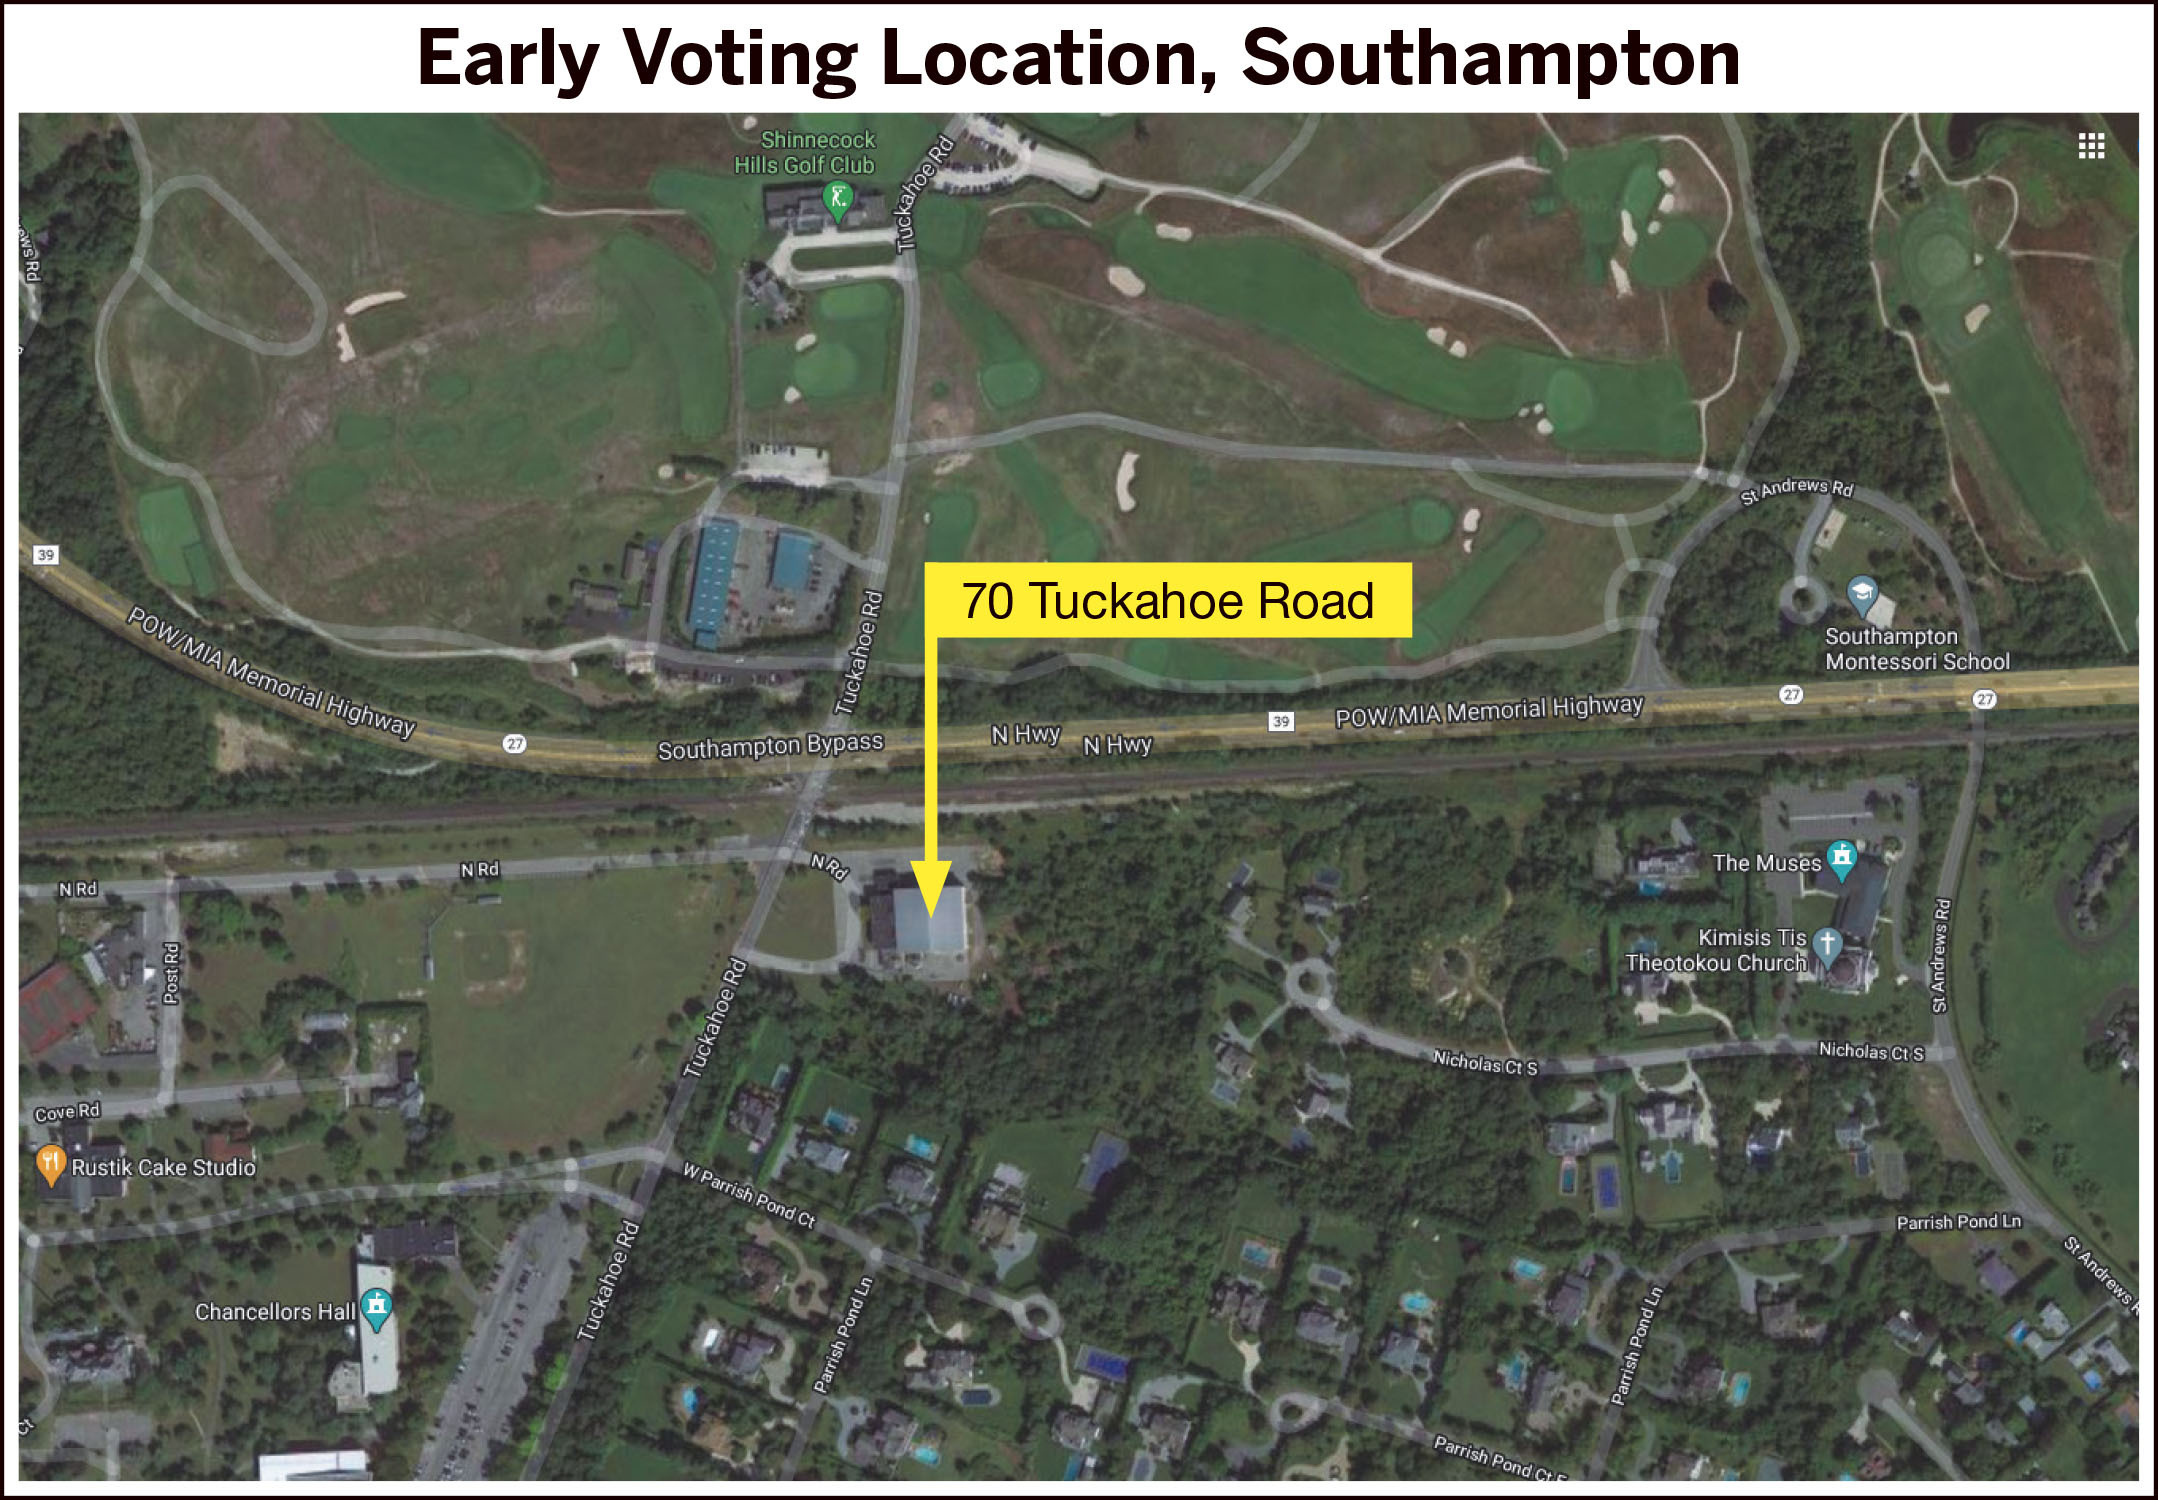 Early voting will be at 70 Tuckahoe Road, the gymnasium at Stony Brook University-Southampton campus.